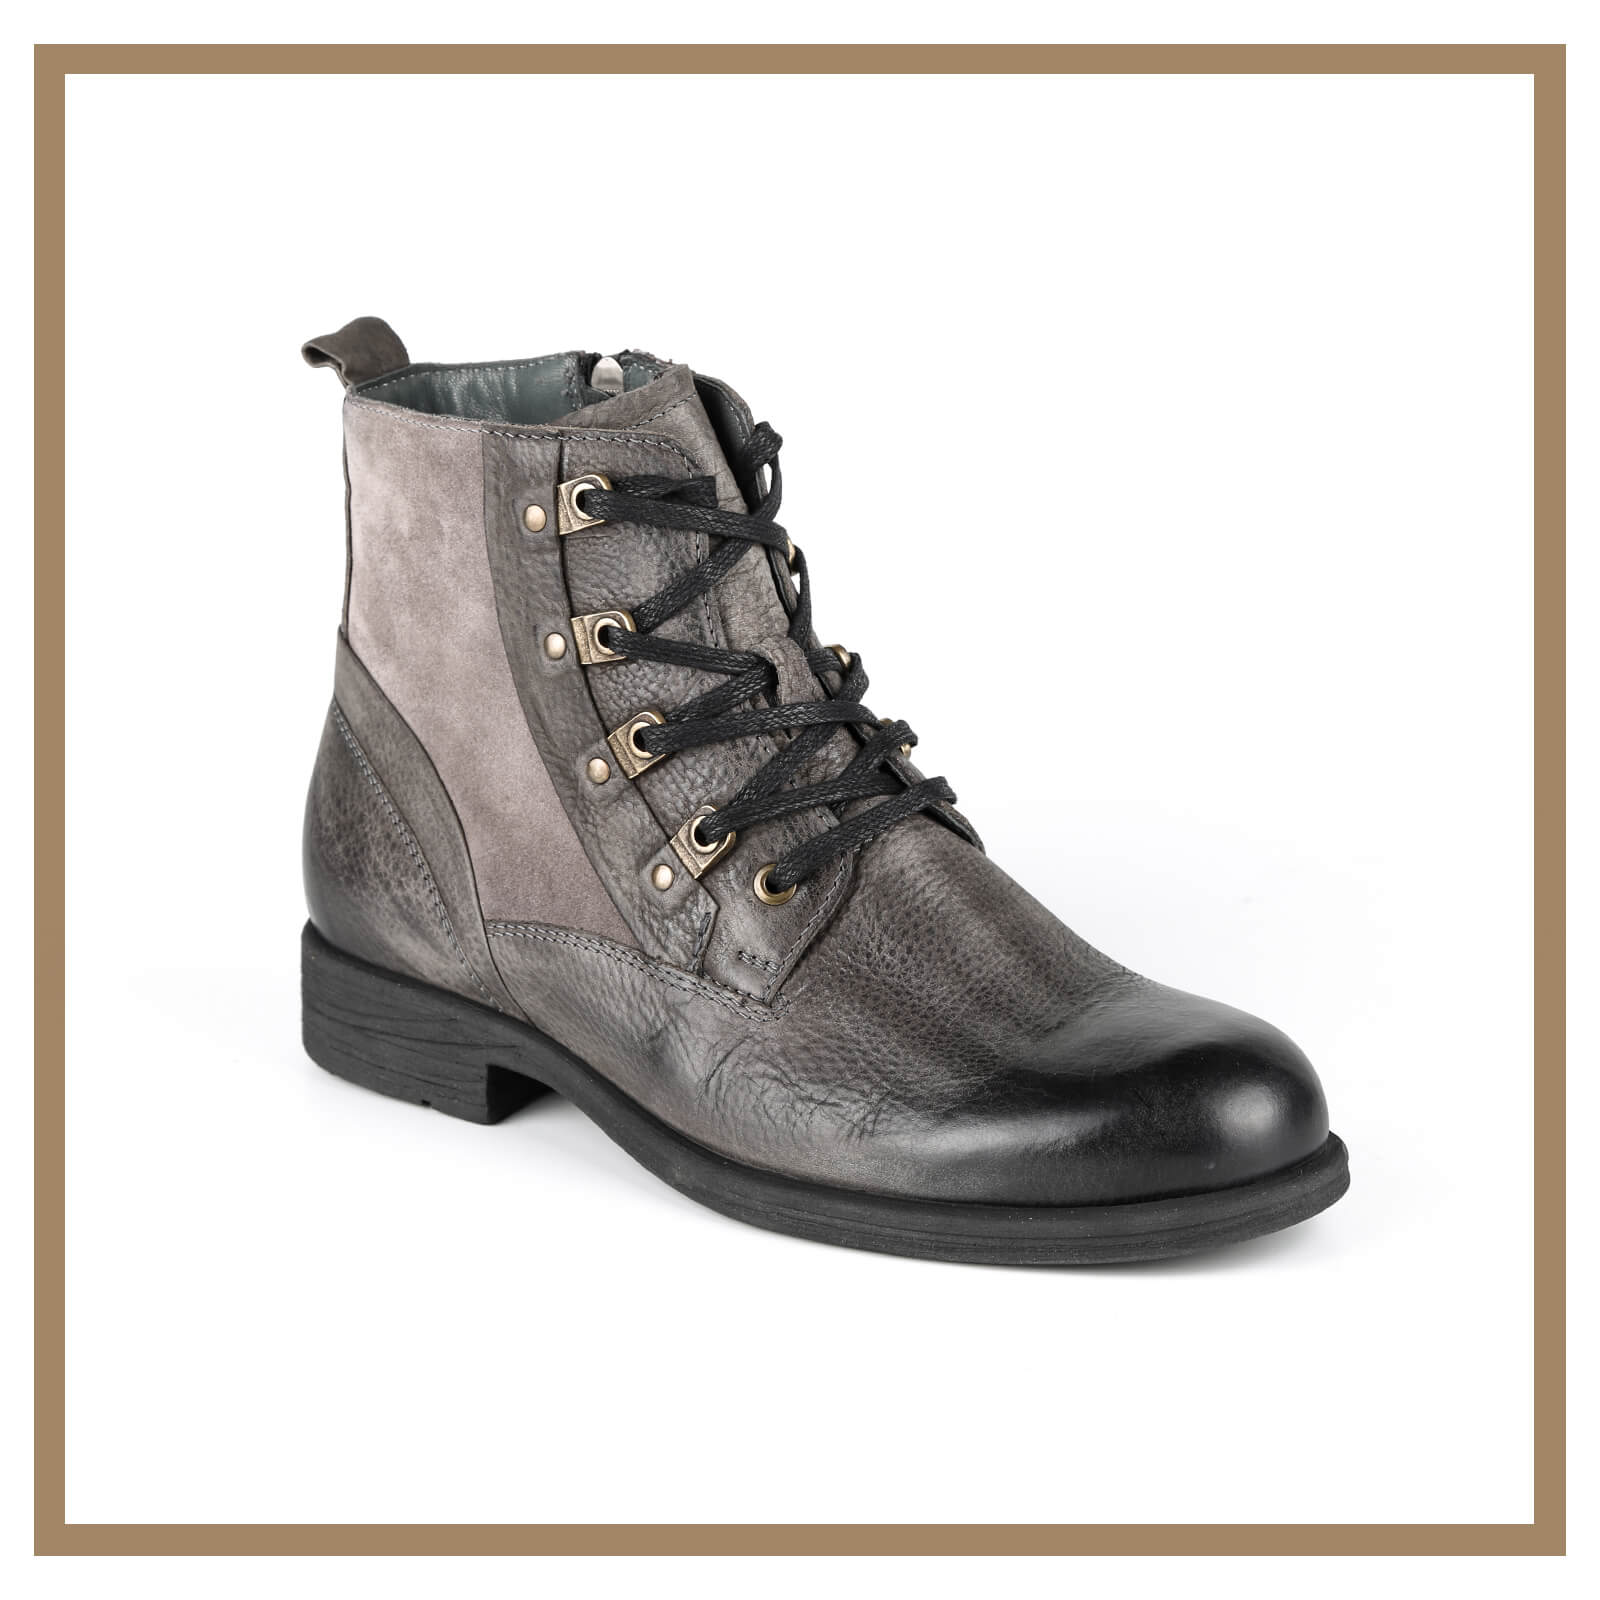 Leather Man Boots 006